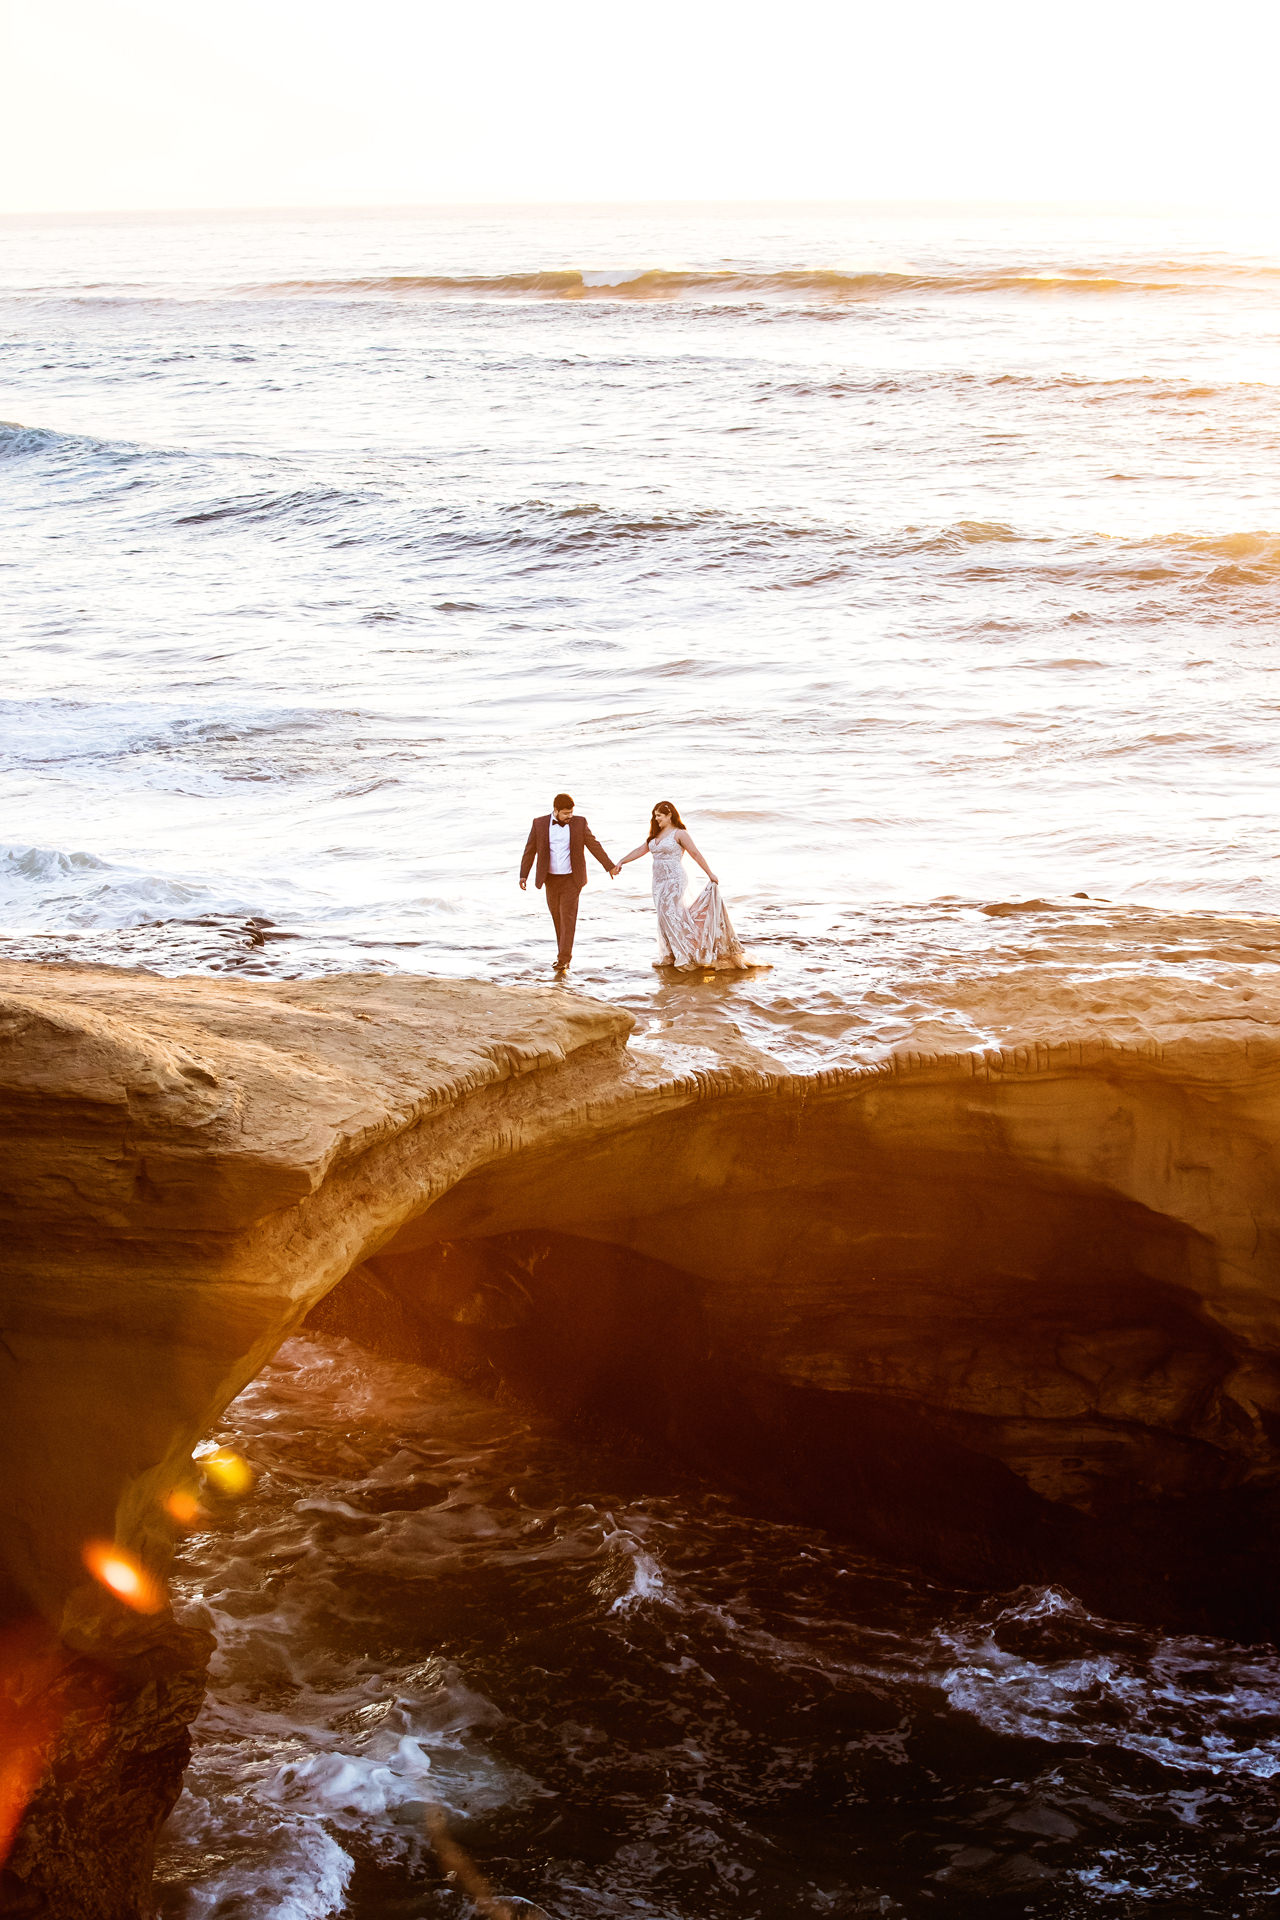 Sunset Cliffs Couple Portrait Session | Hand in hand as they cross the beach cliffs together